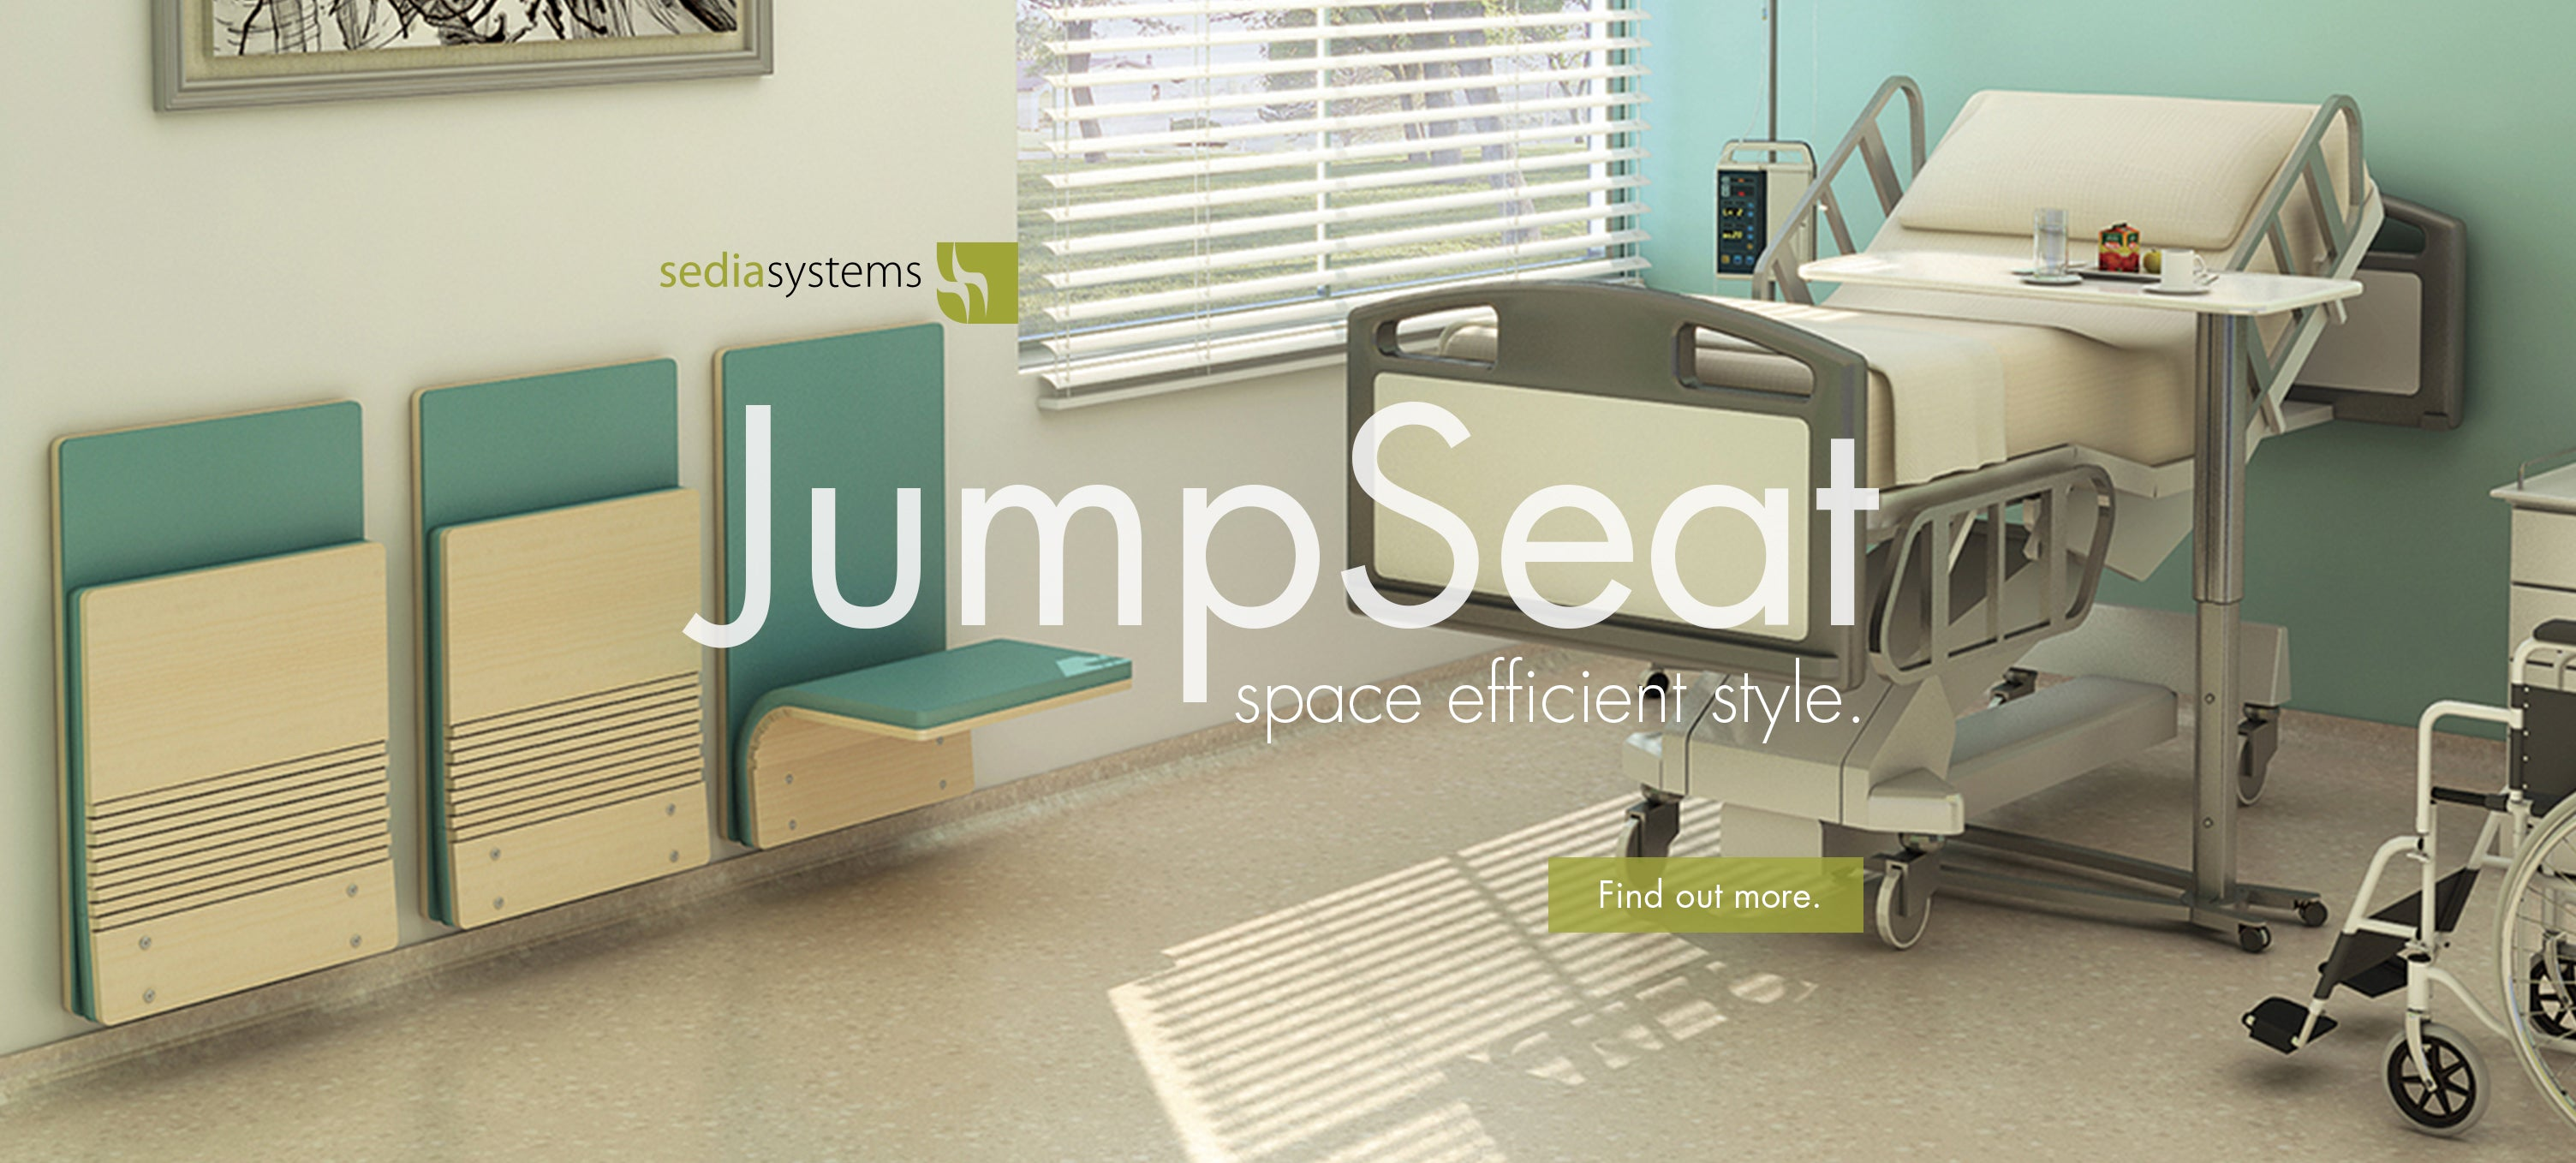 Sedia Systems Jump Seat health care seating